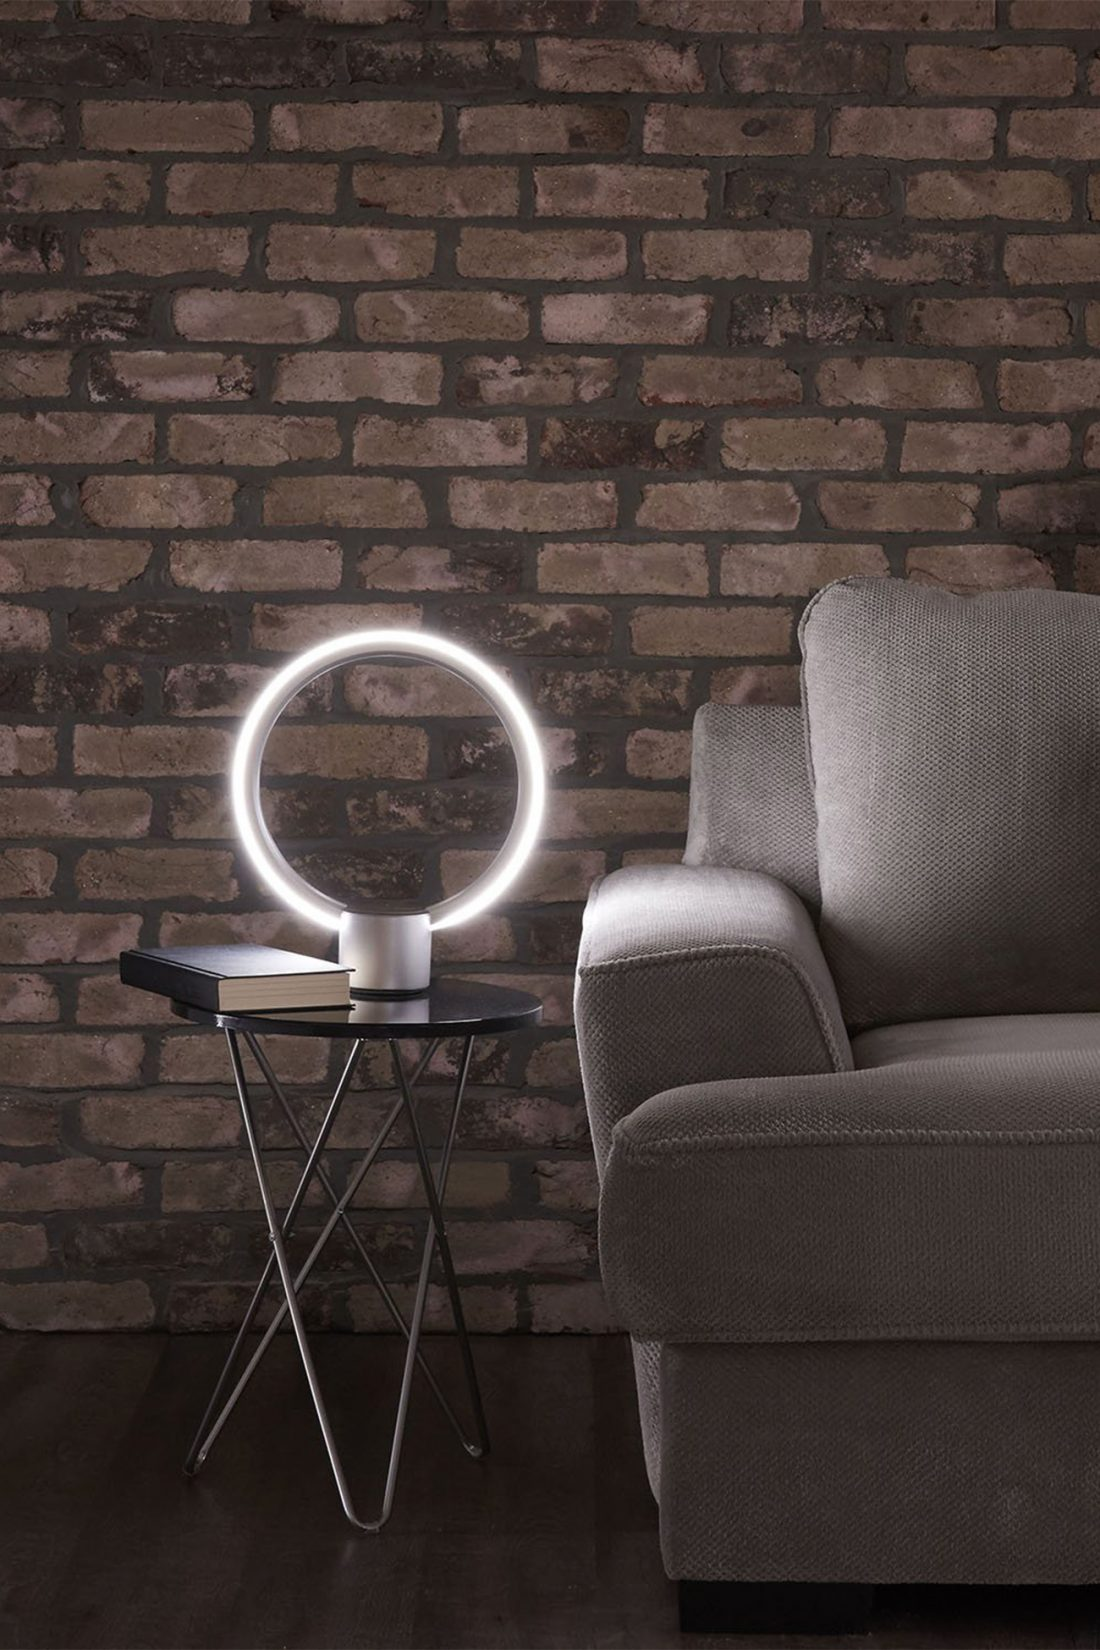 Sol by GE: Smart lighting